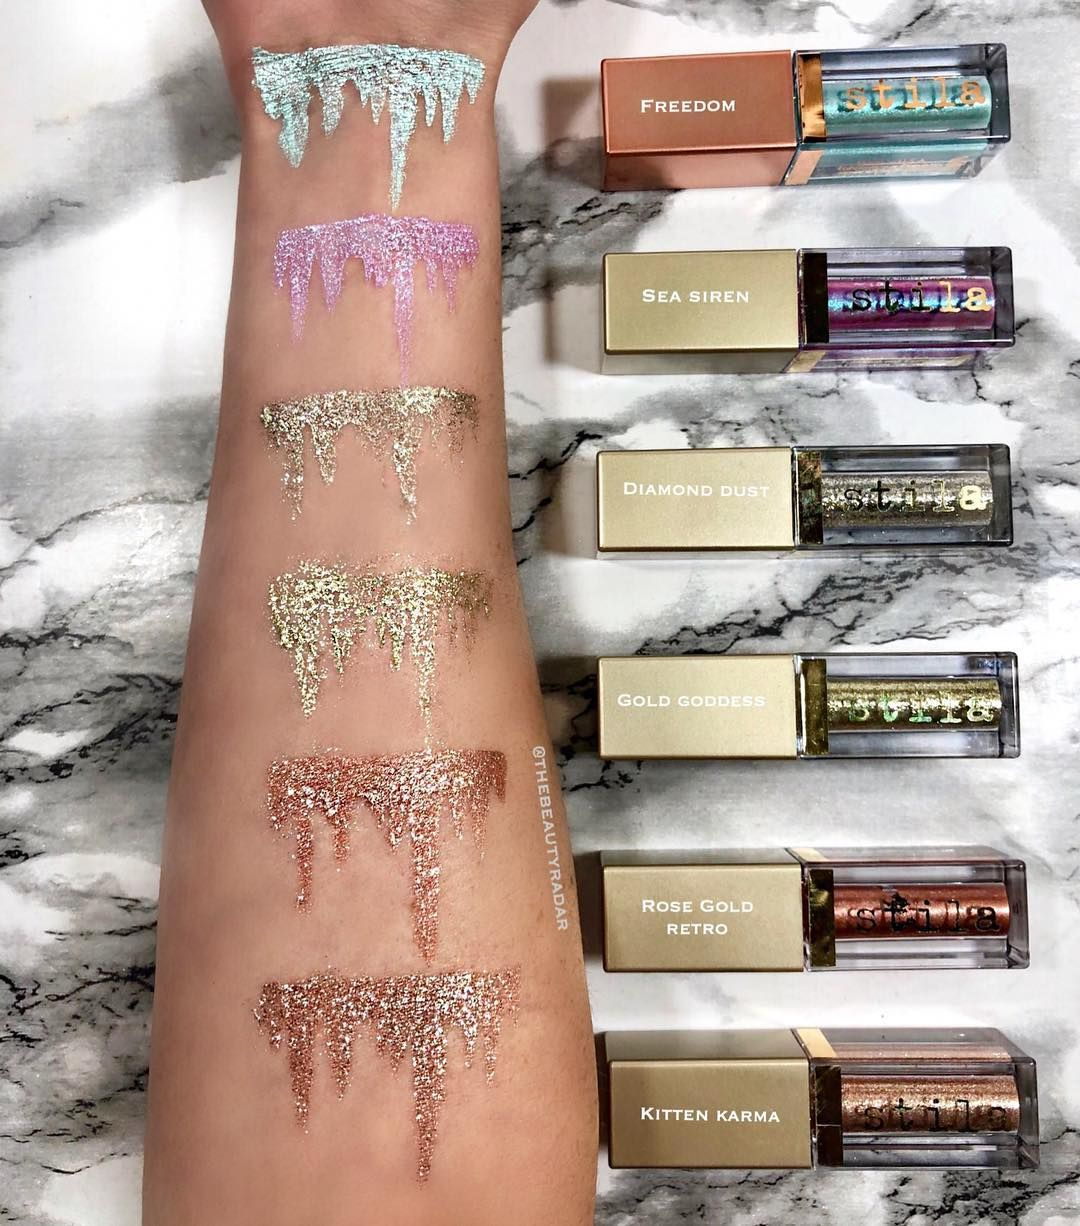 Glitter Icicles Stilacosmetics Which Shade Is Your Fav These Are My Absolute Fav Glitter Stila Glitter Eyeshadow Glitter Eyeshadow Stila Liquid Eyeshadow